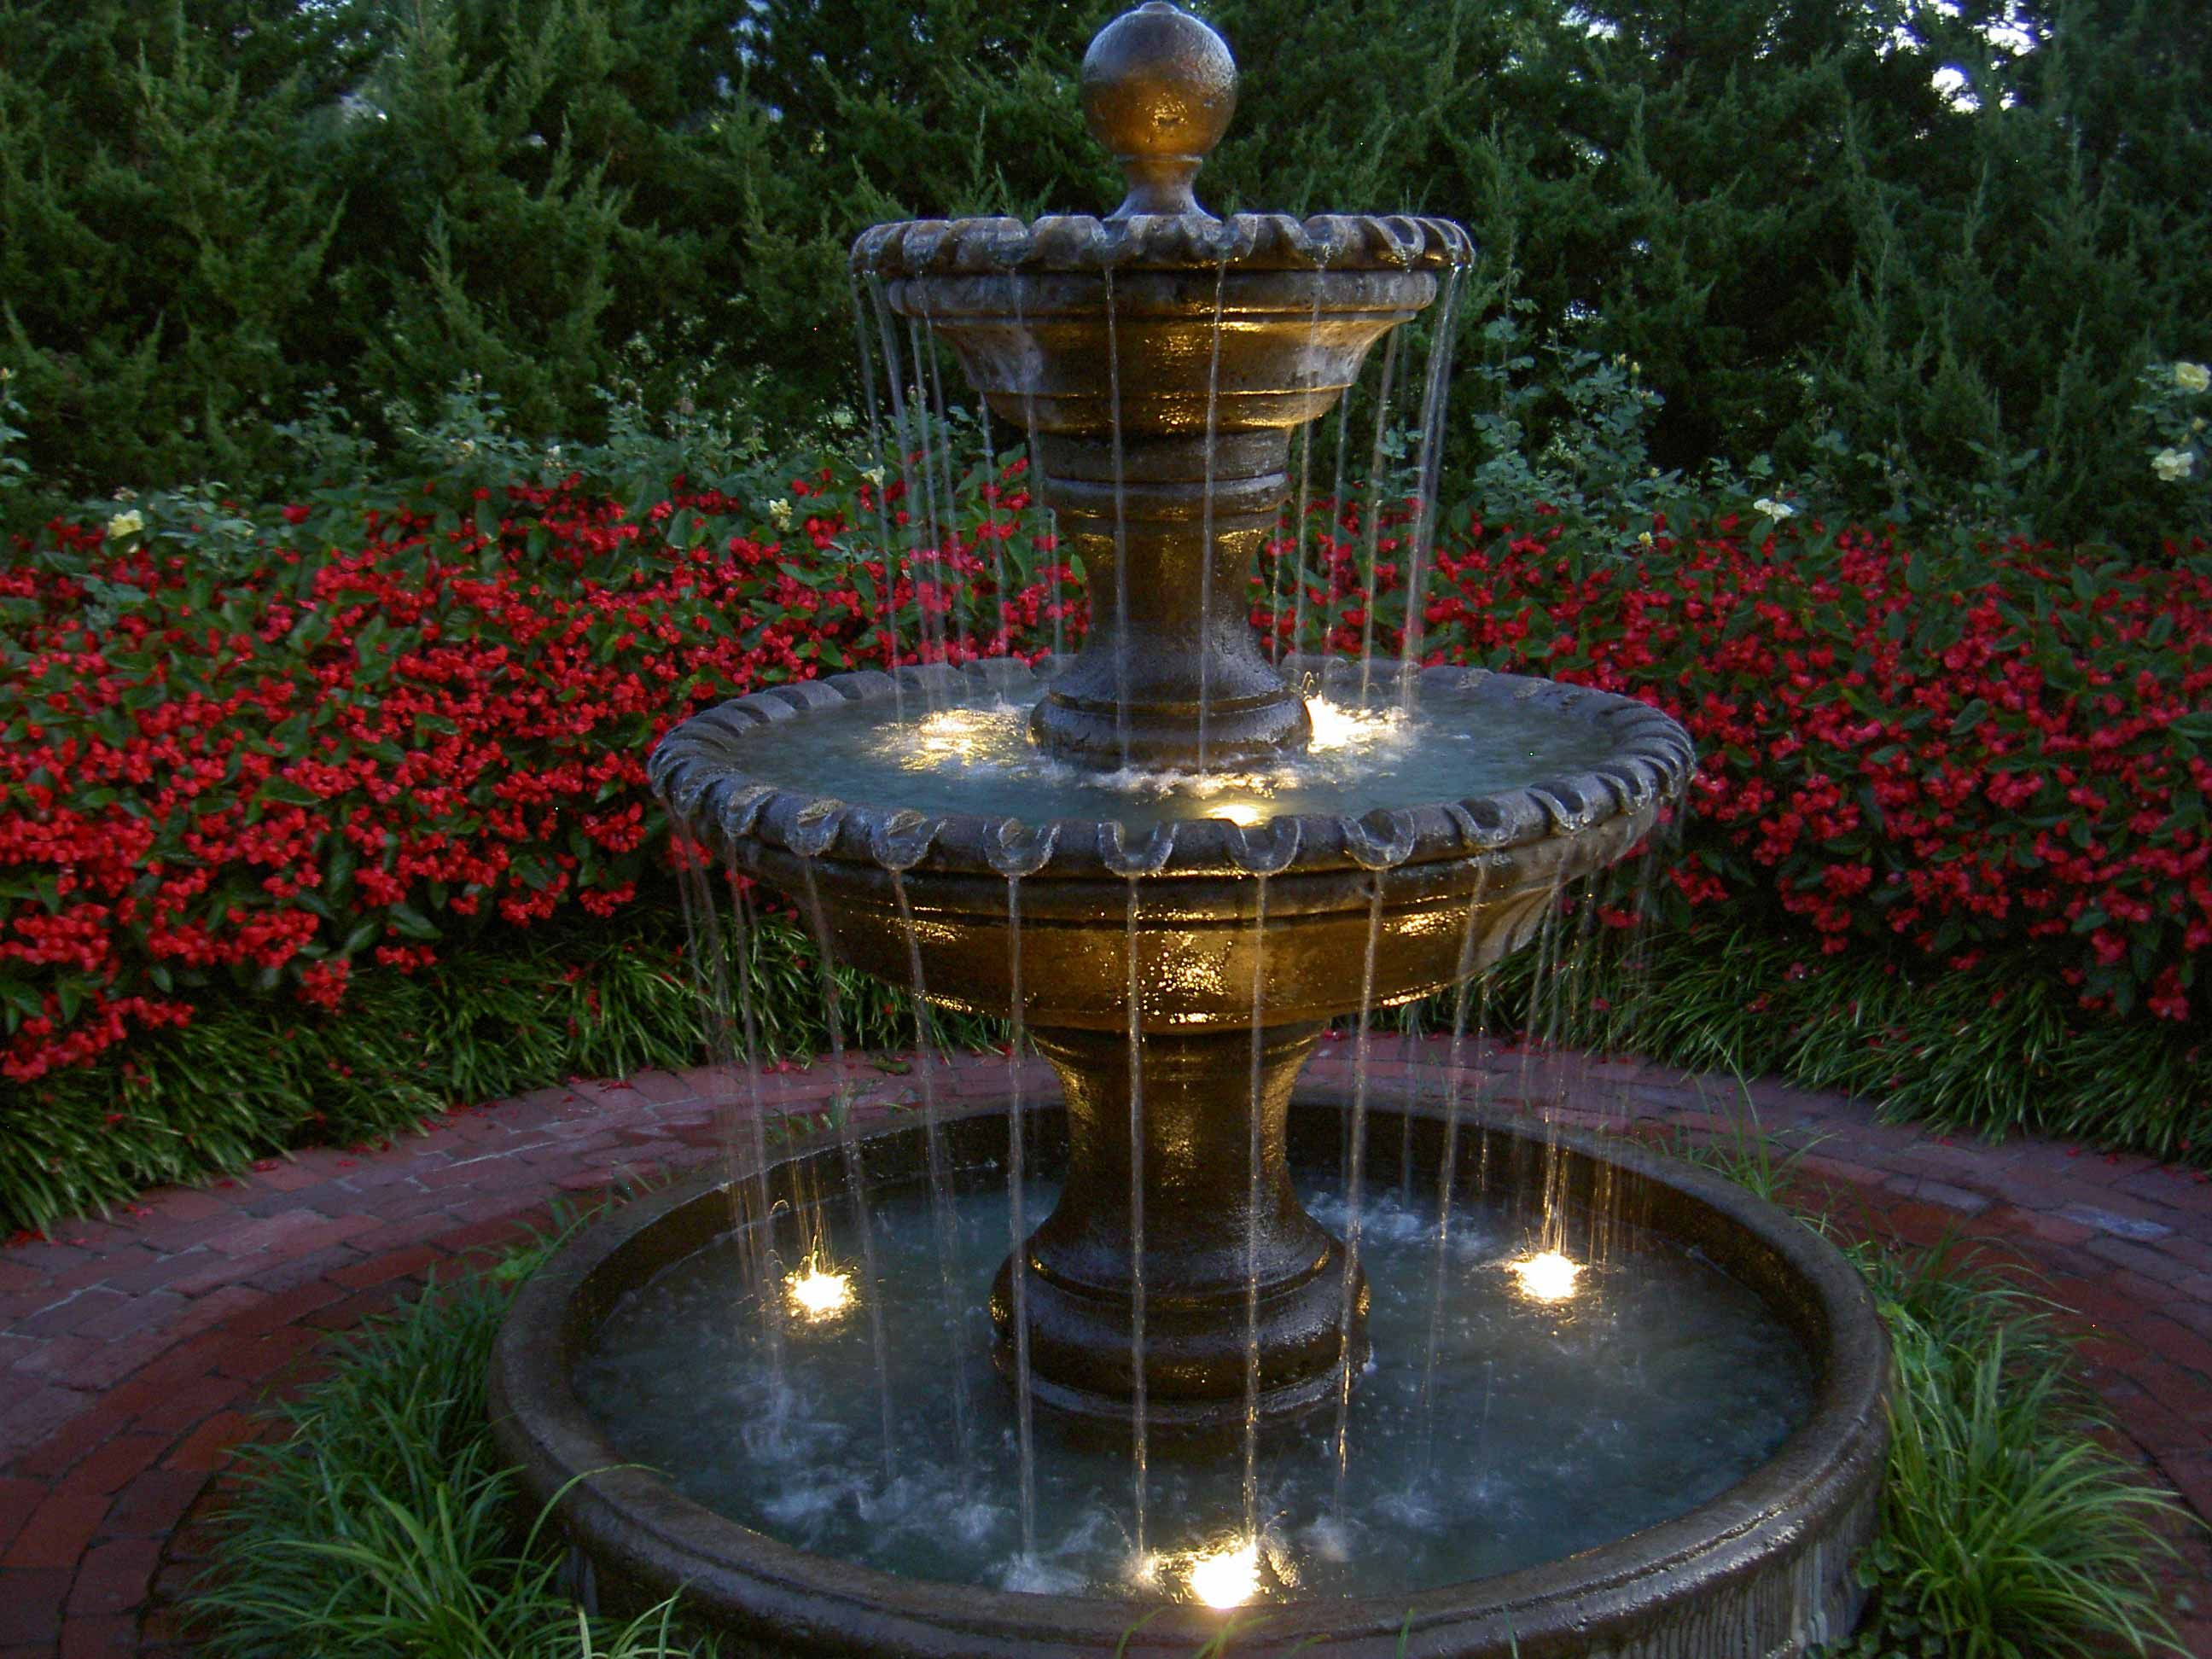 35 Amazing Outdoor Garden Water Fountains Ideas Landscaping With